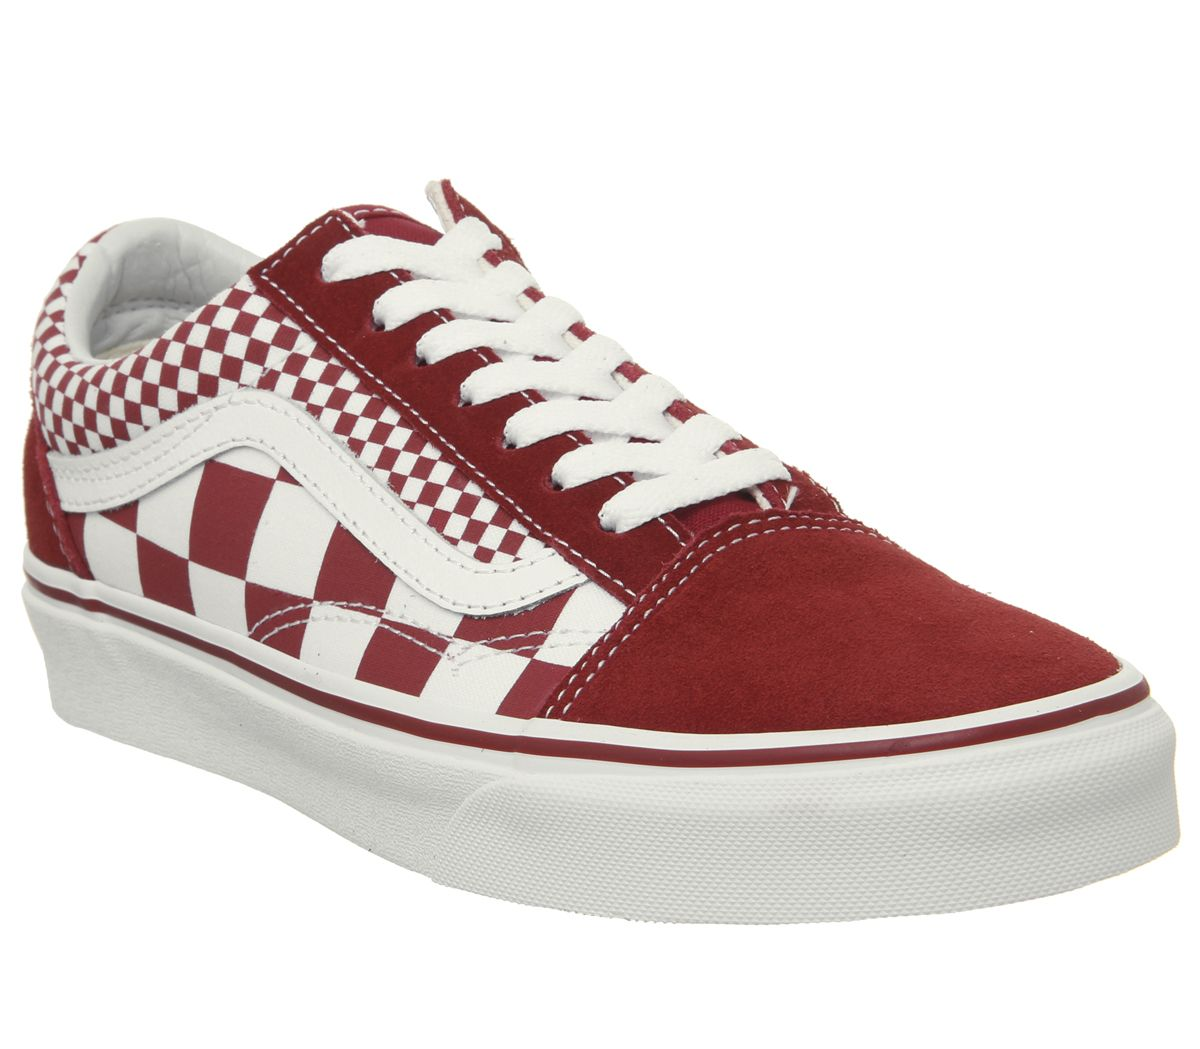 da2f7abeedd Vans Old Skool Trainers Chilli Pepper Mix Check True White - Unisex ...